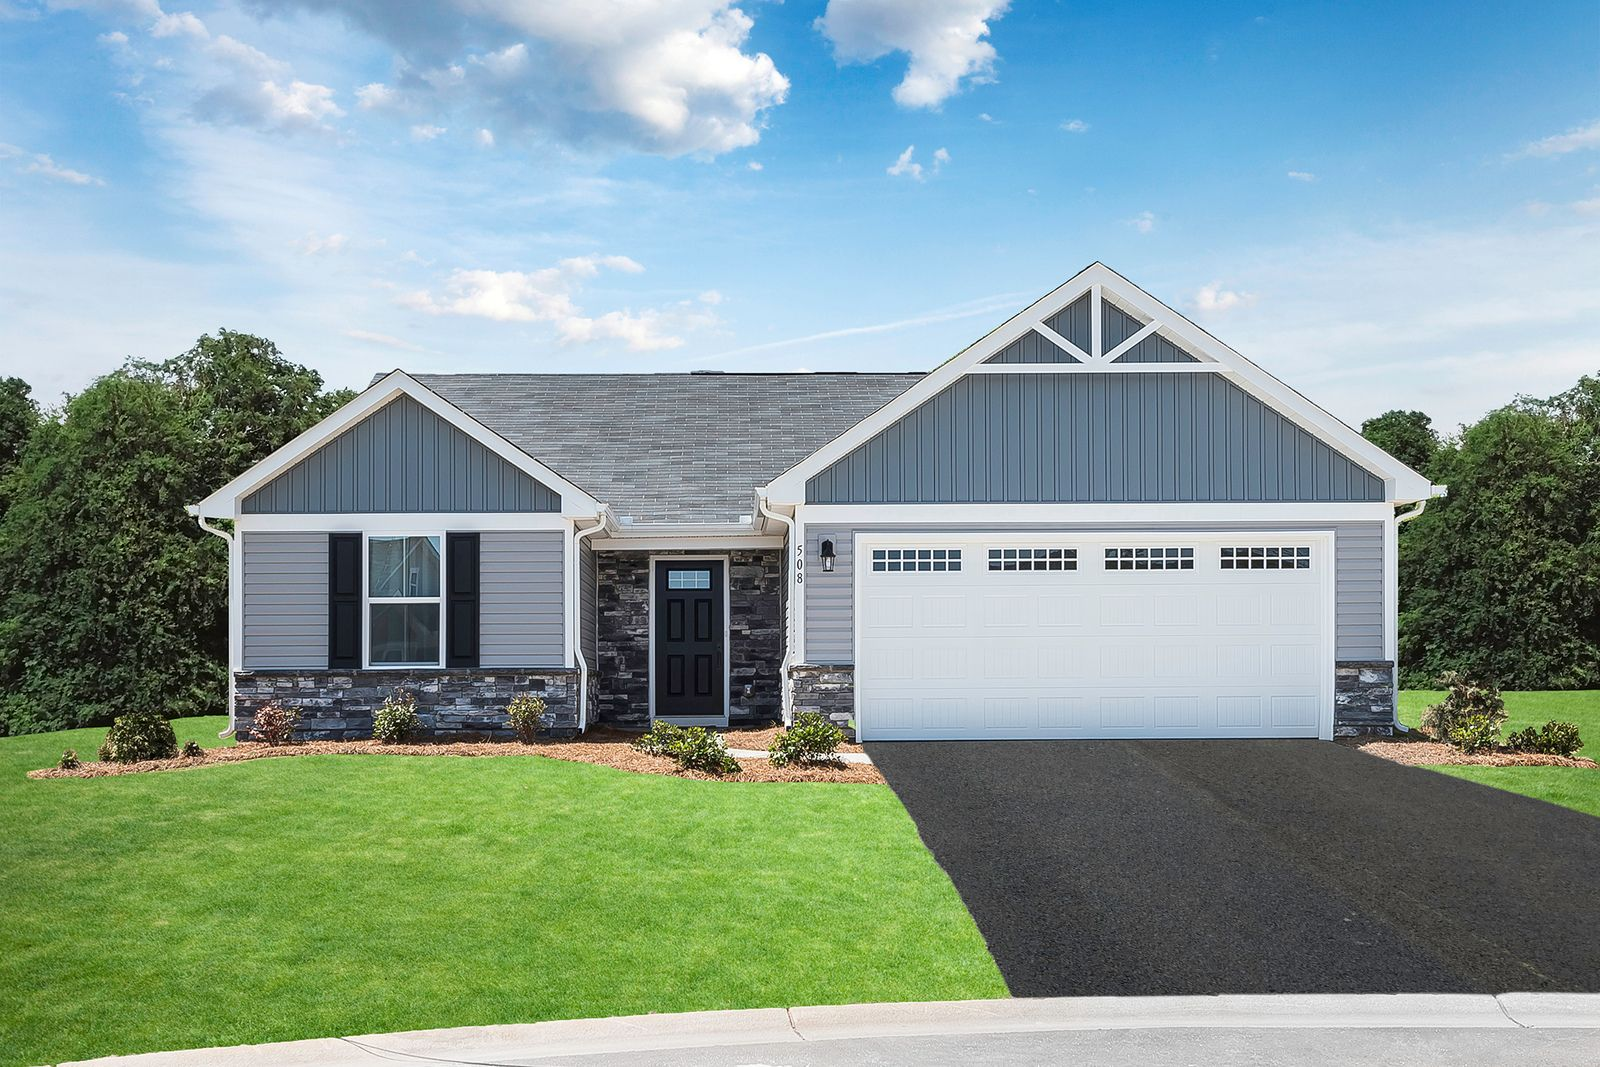 WELCOME HOME TO SPRING VALLEY FARMS:Montgomery County's lowest-priced brand new ranch homes with 2-car garages in a low-maintenance community with a clubhouse, perfect for active adults.Schedulean appointment today!